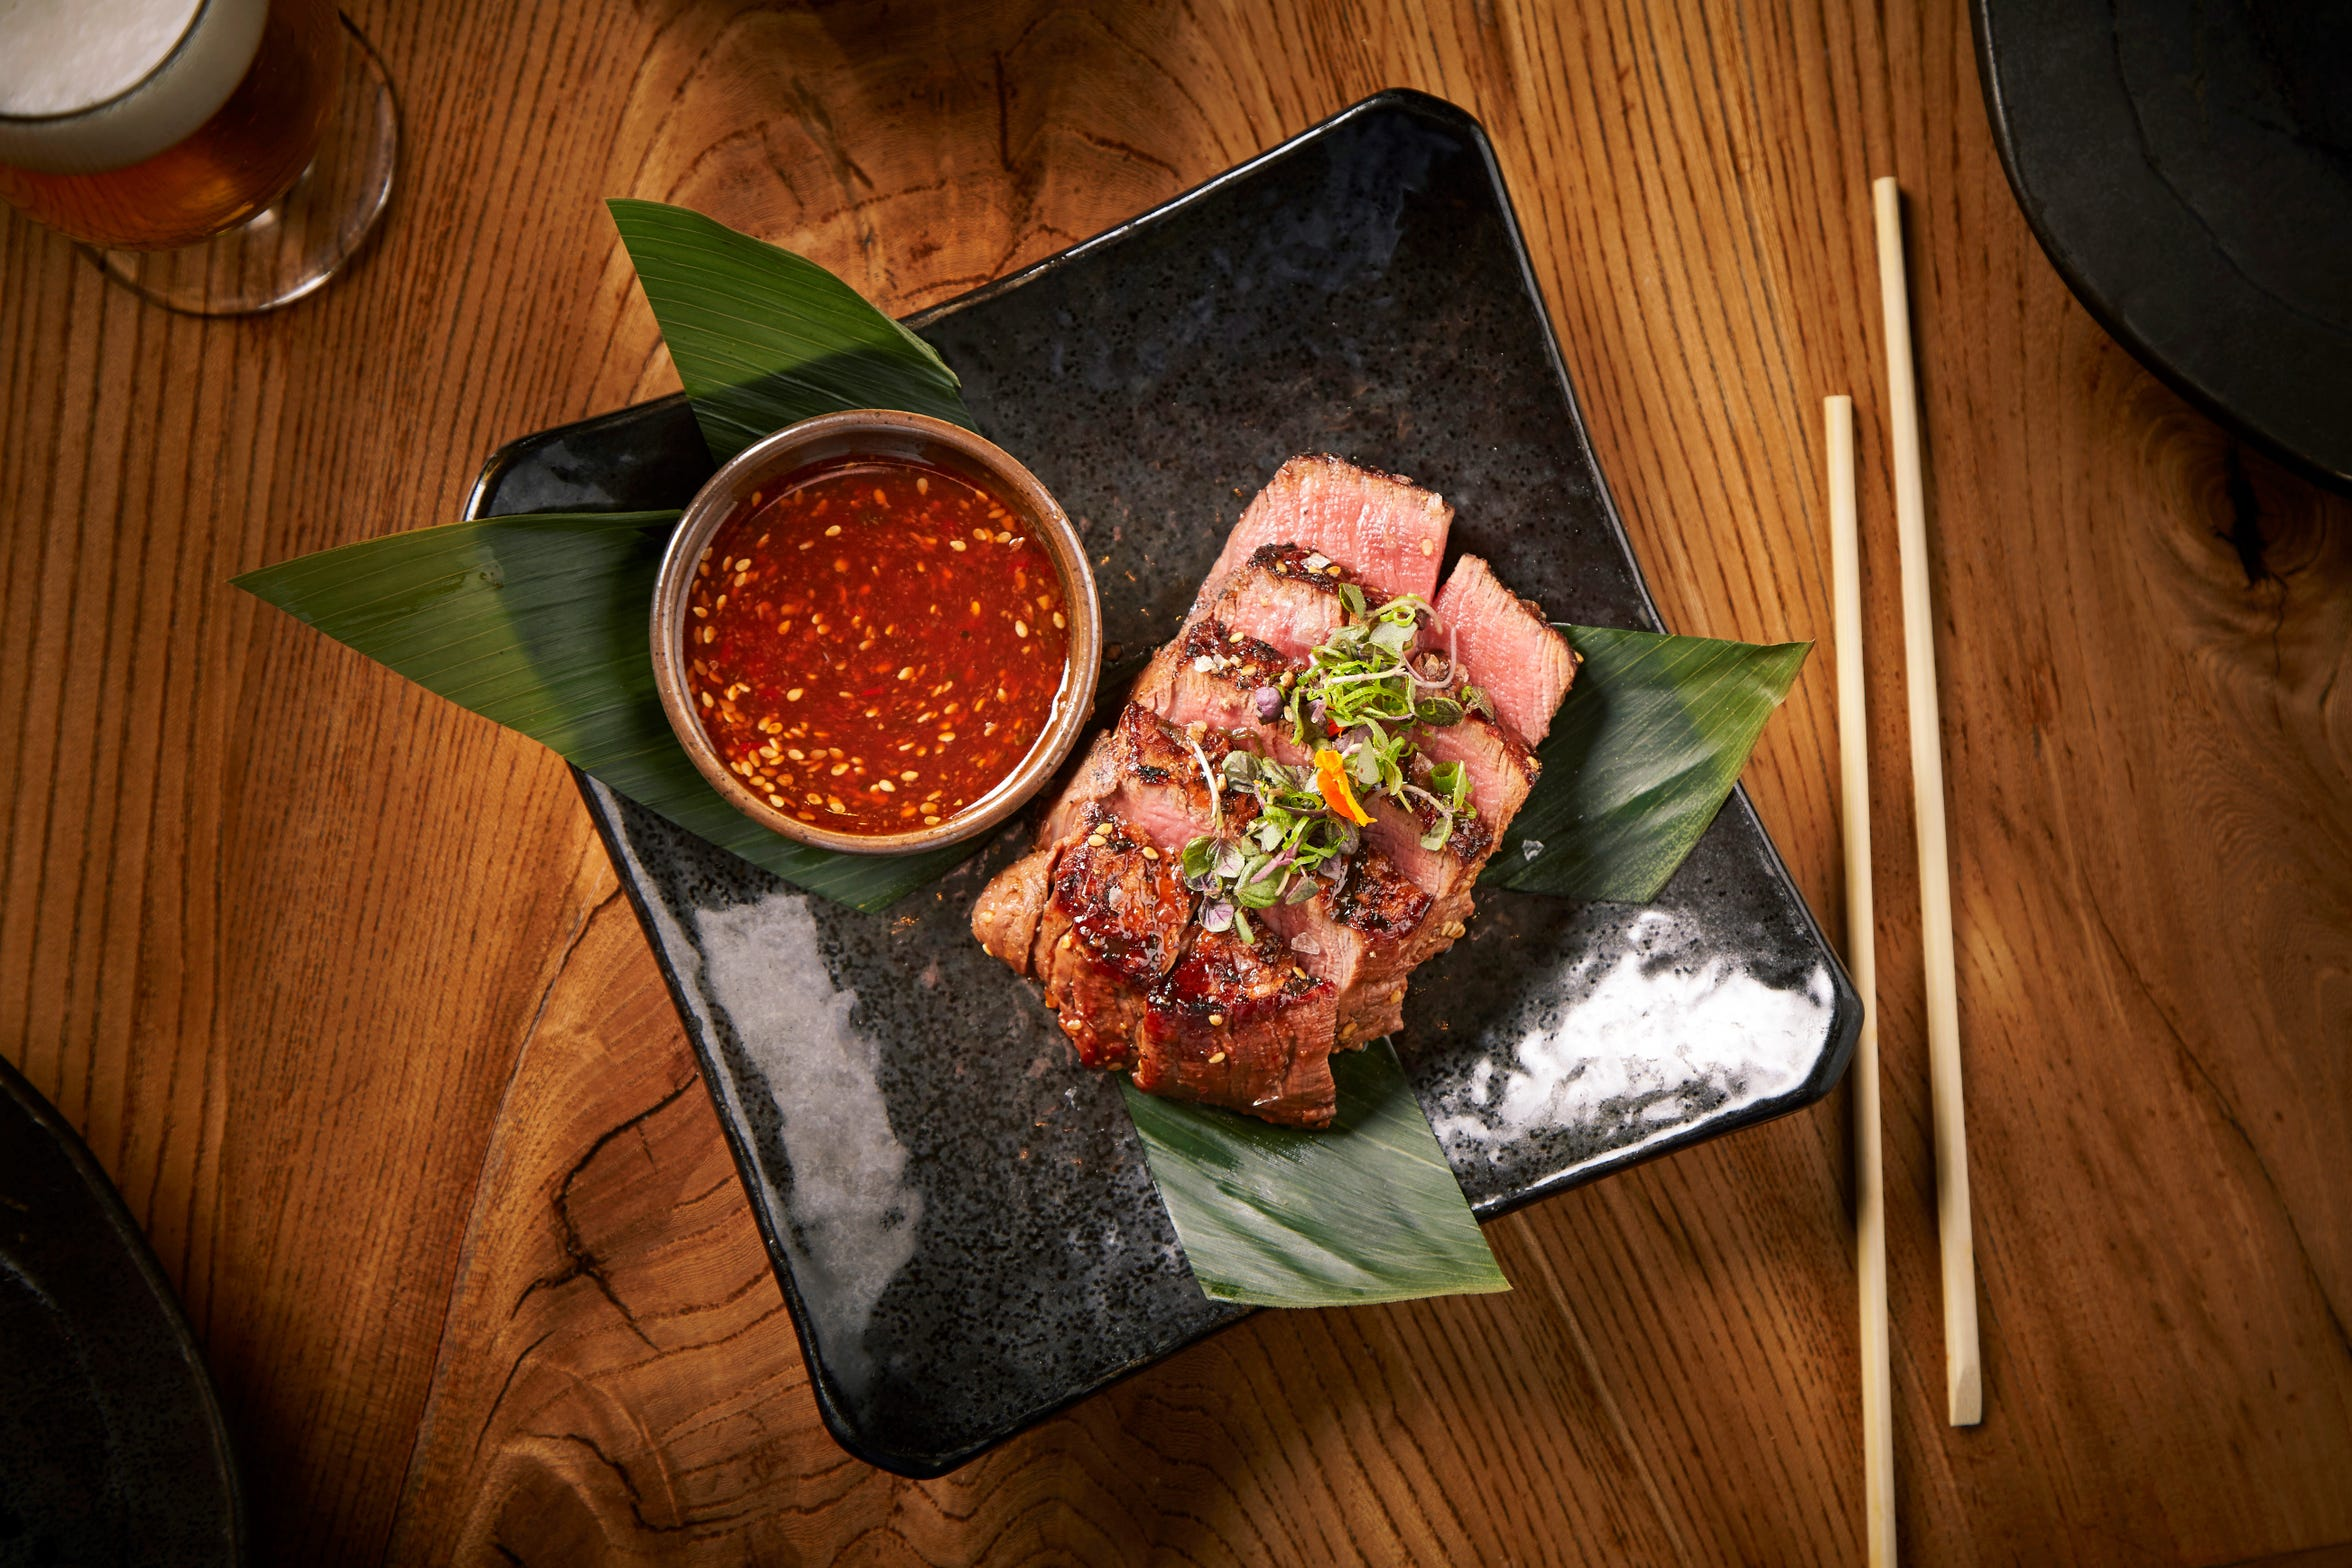 The prime fillet at Roka Akor.